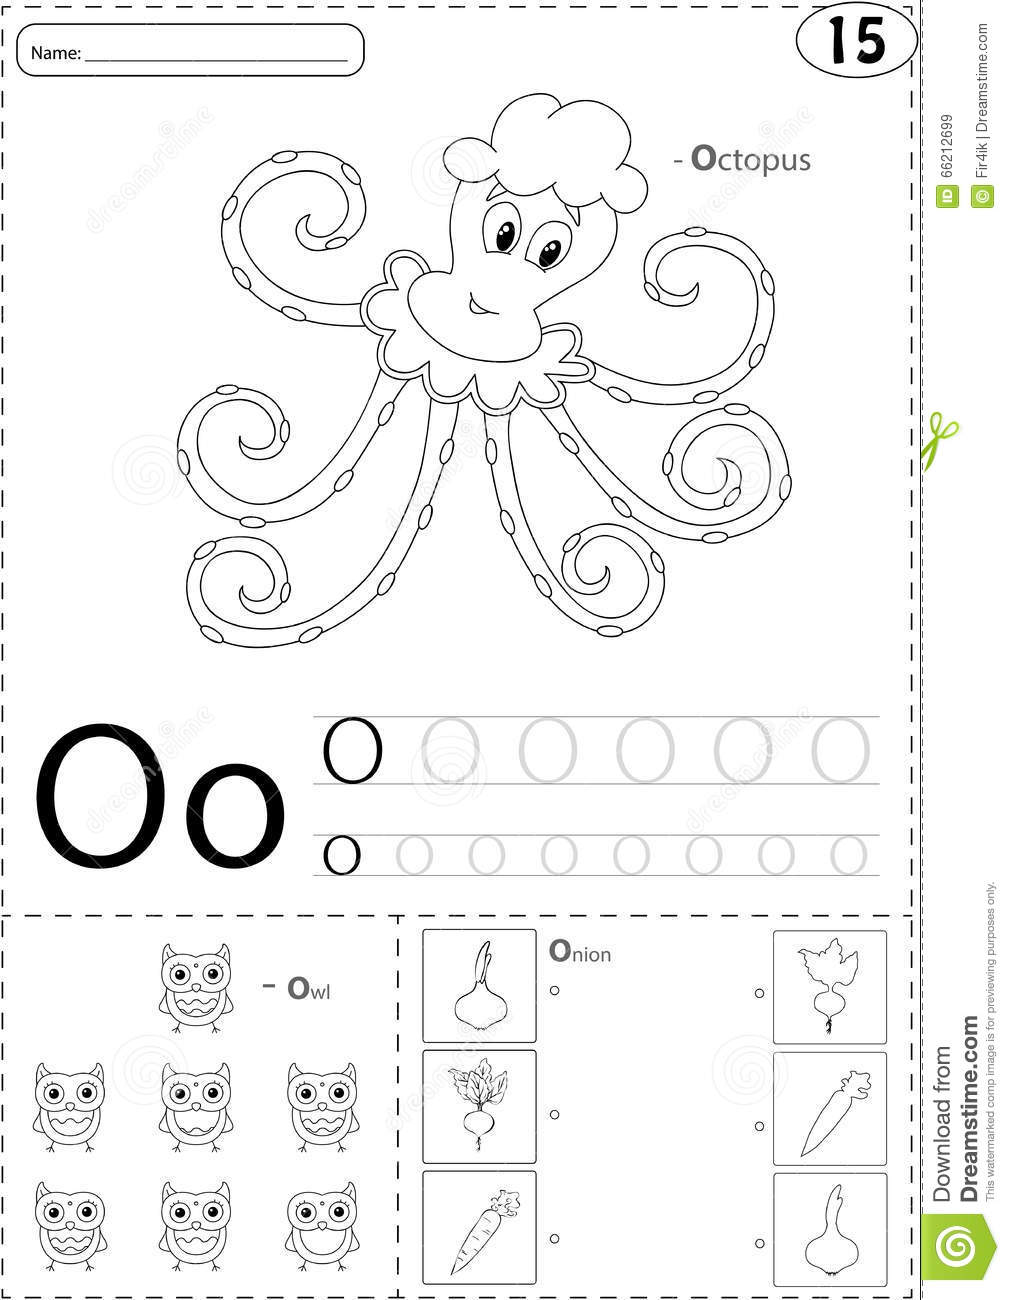 Cartoon Octopus, Owl And Onion. Alphabet Tracing Worksheet